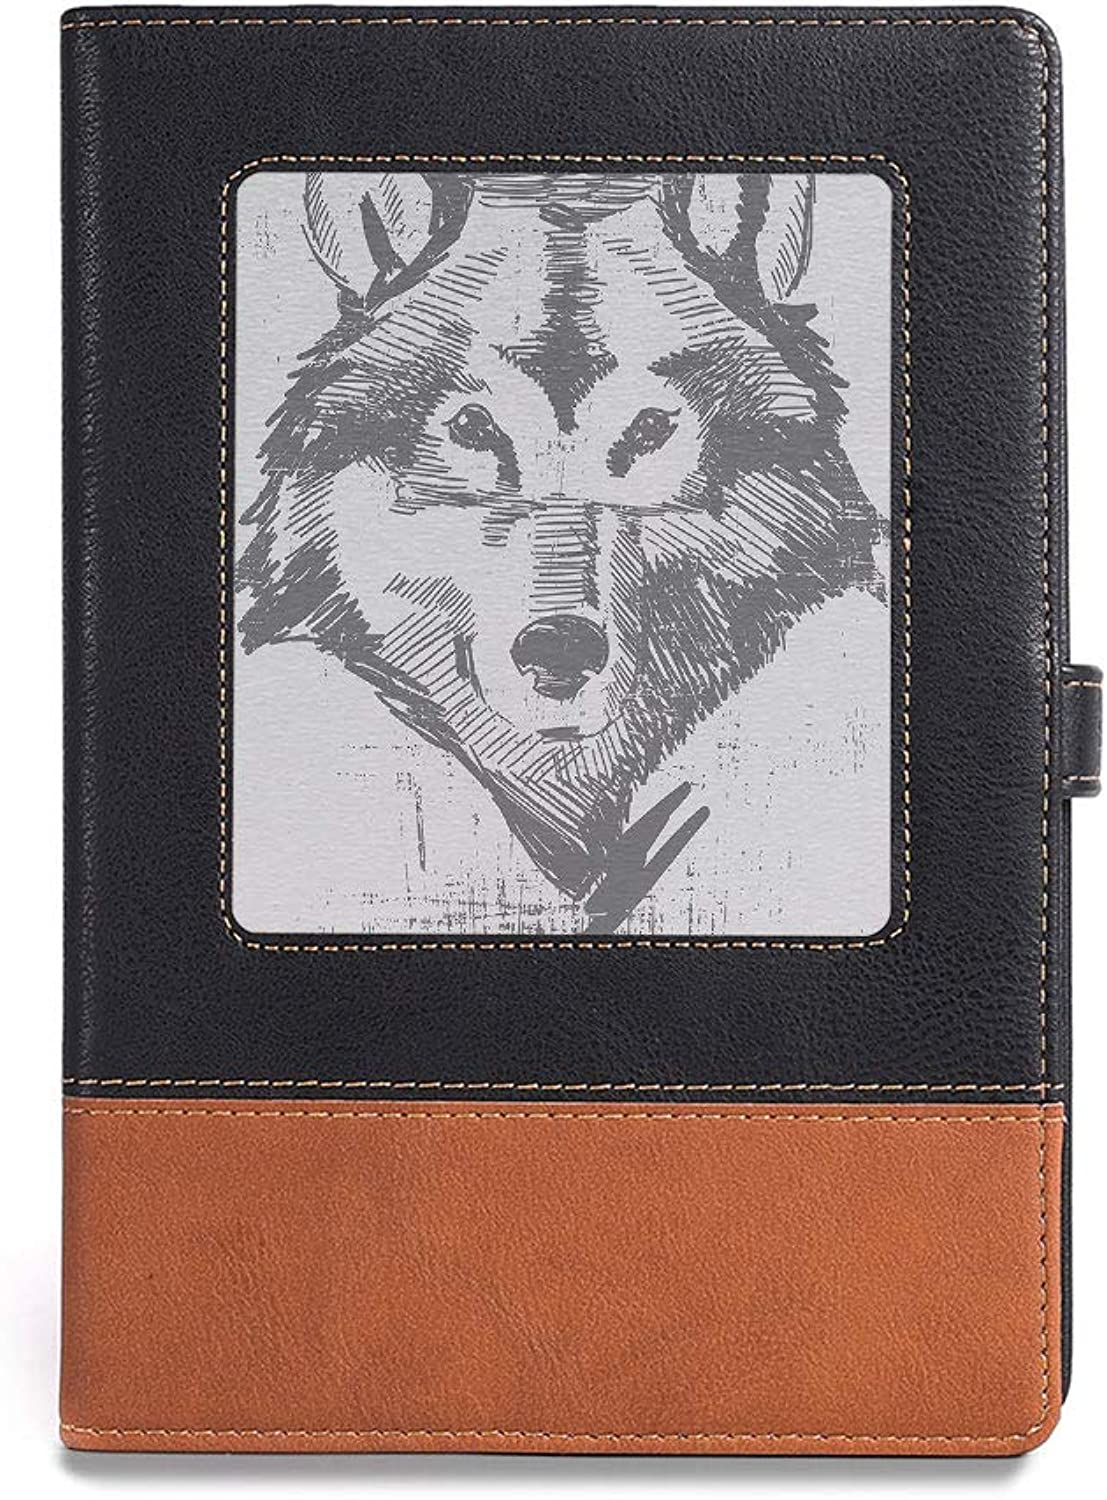 Premium Thick Paper,Wolf,A5(6.1  x 8.6 ),Easy to Write, Draw or Sketch,Monochrome Sketch Style Detailed Animal Pattern Grunge Head,